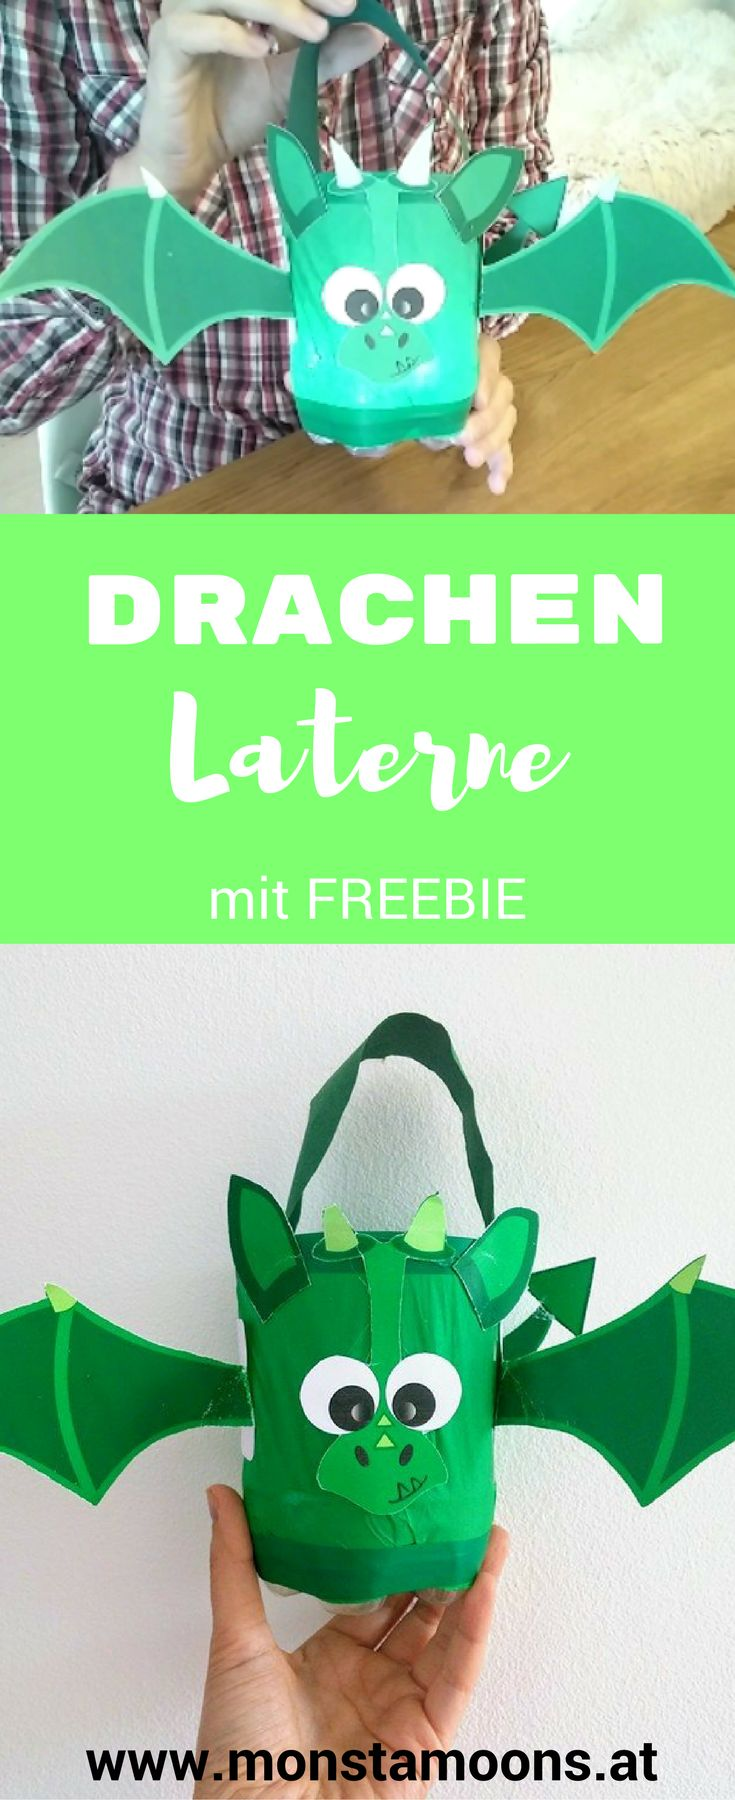 Laterne basteln DIY Laterne latern craft dragon latern Drachen Laterne St